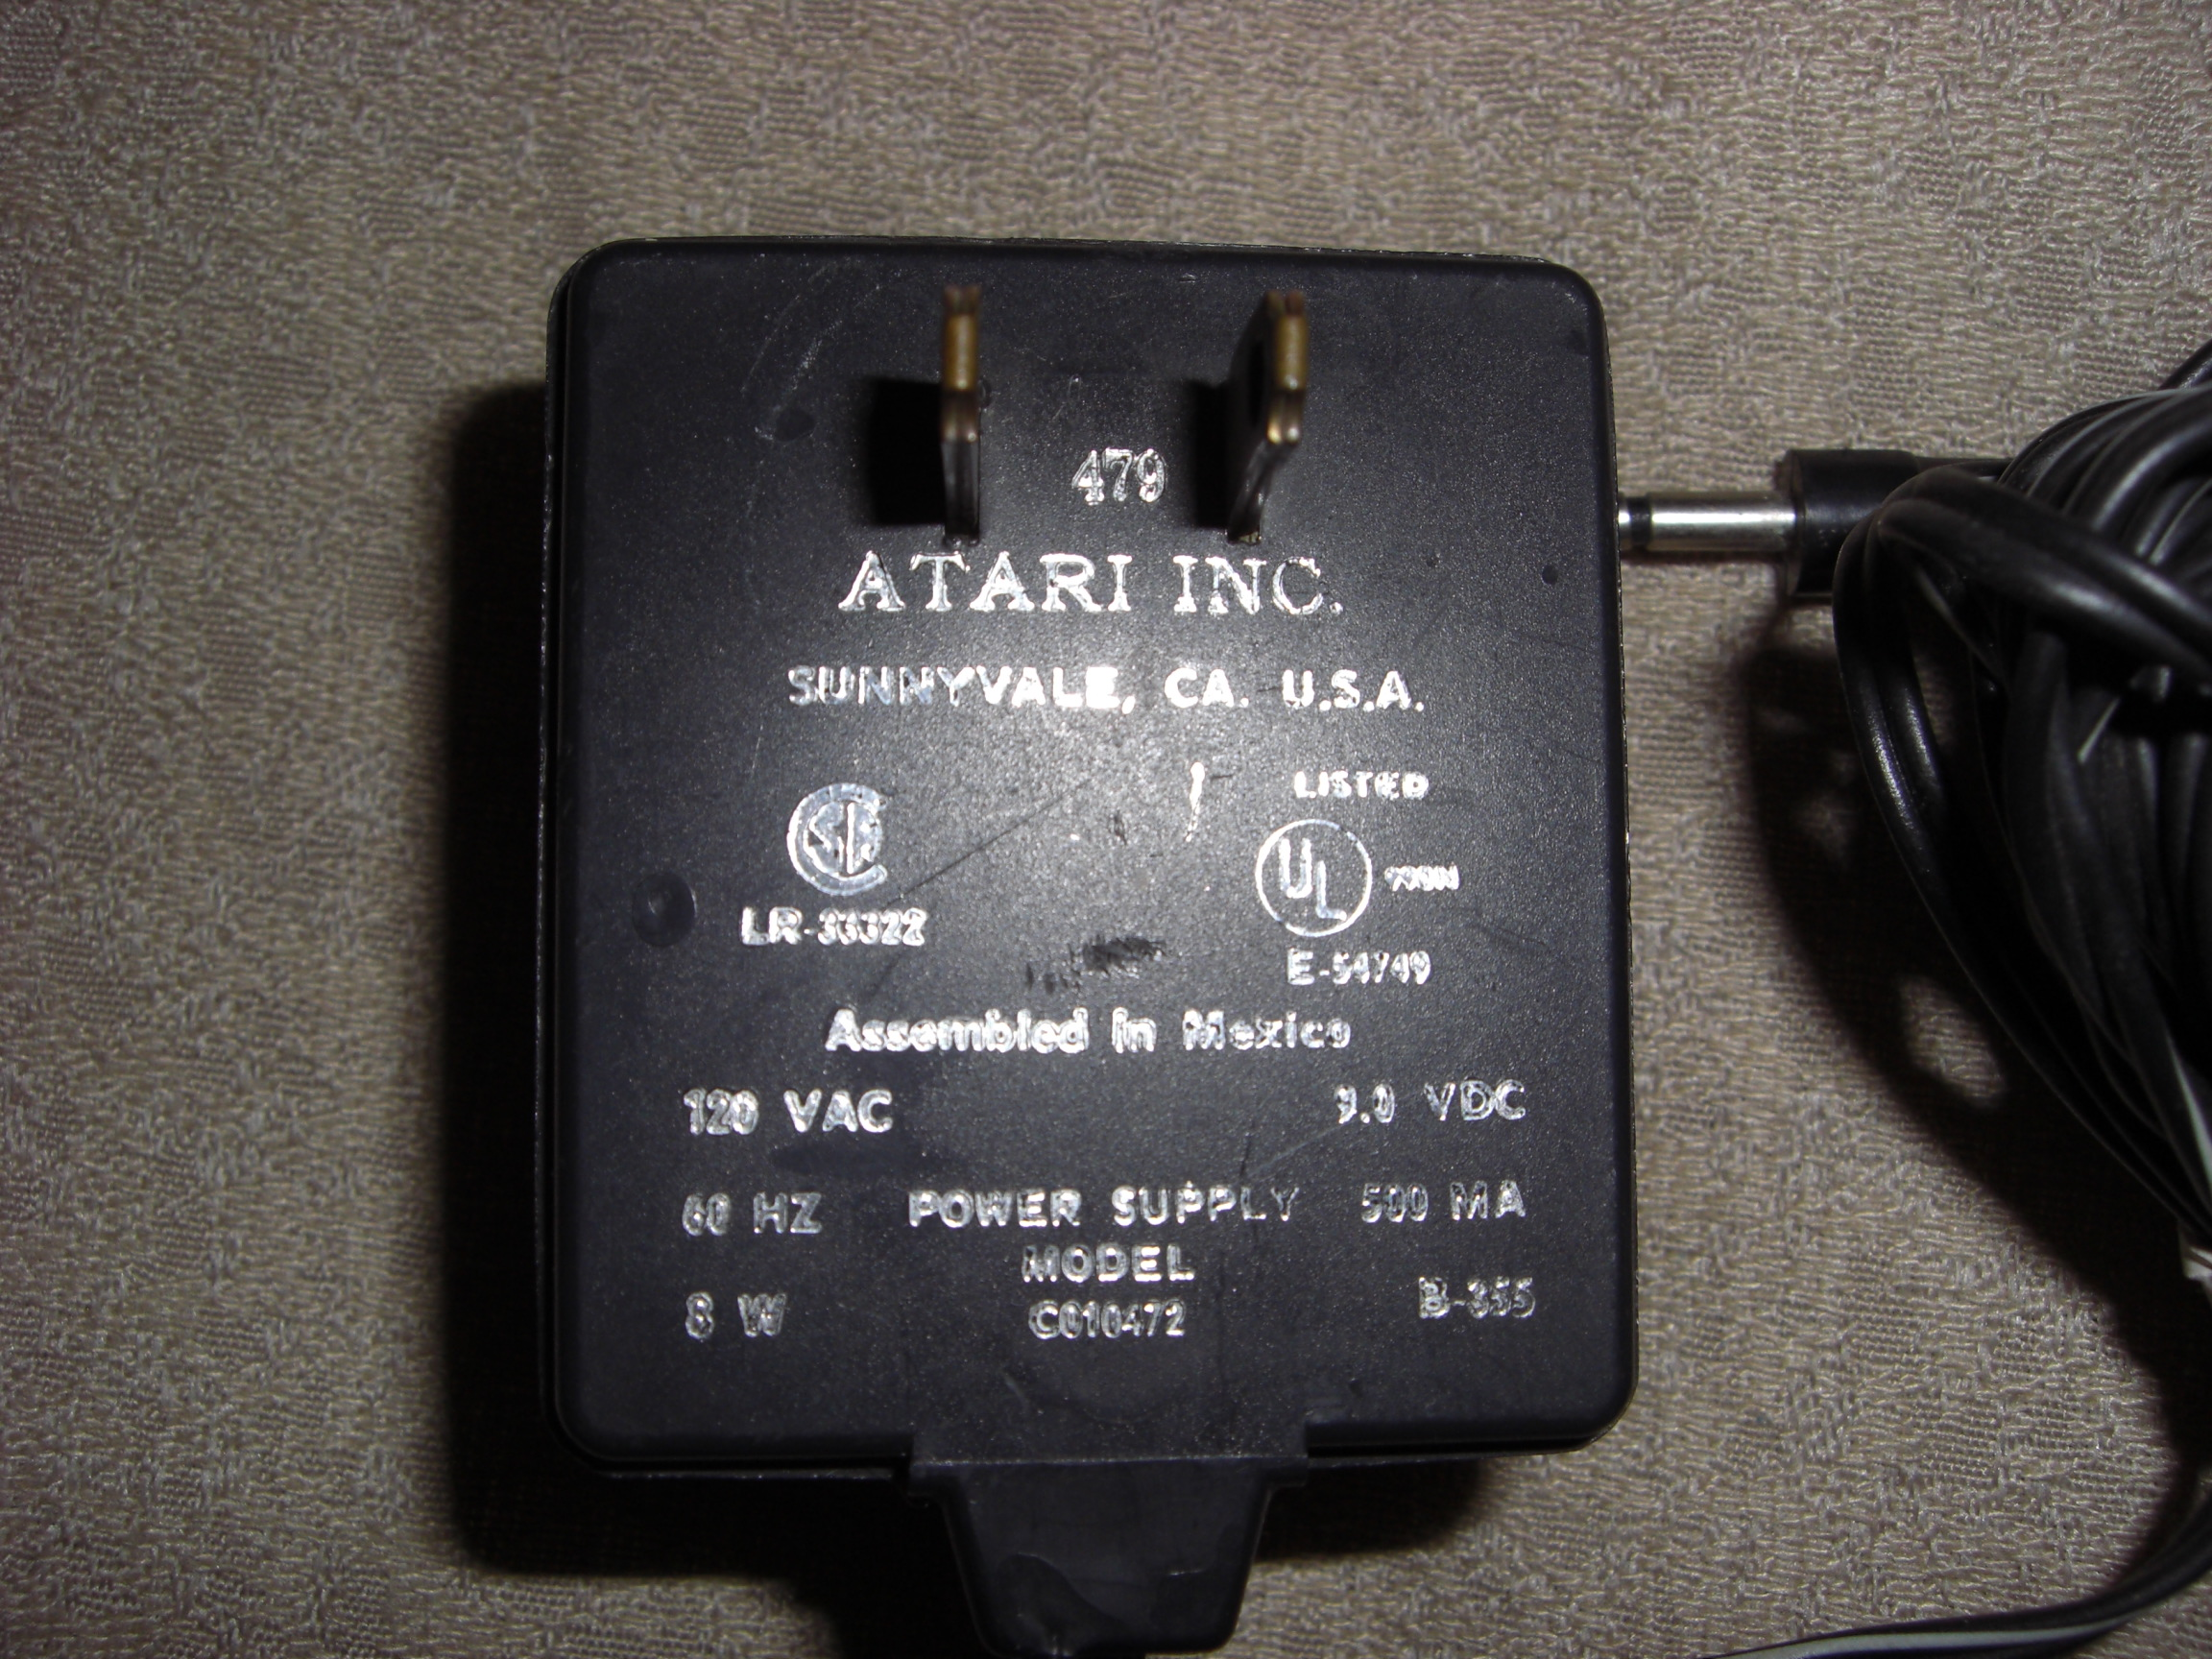 atari 8 bit puters frequently asked questions